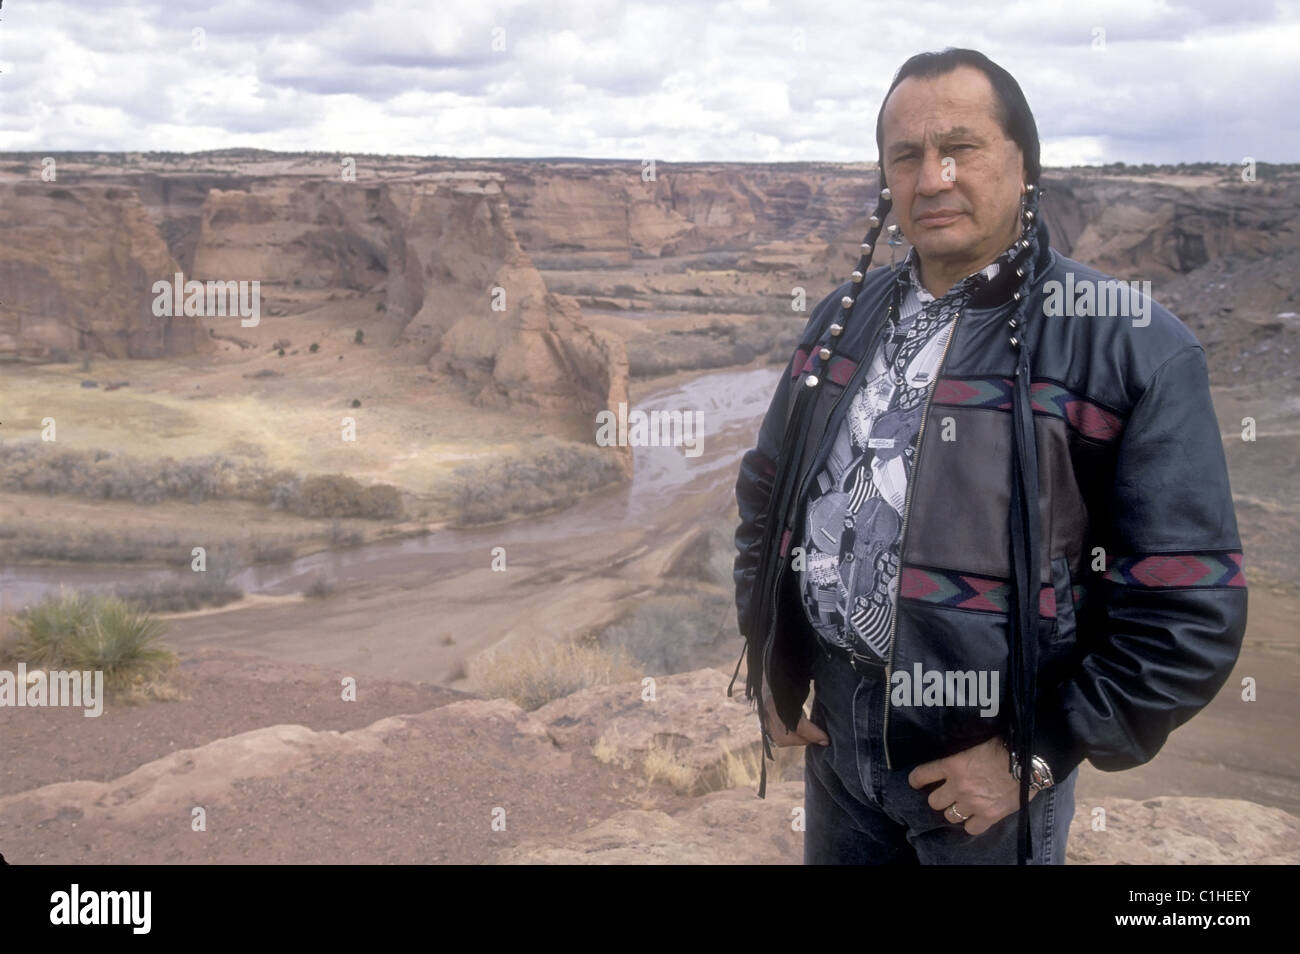 Actor and native American activist Russel Means in front of the Canyon de Chelly, near his home in Arizona. - Stock Image